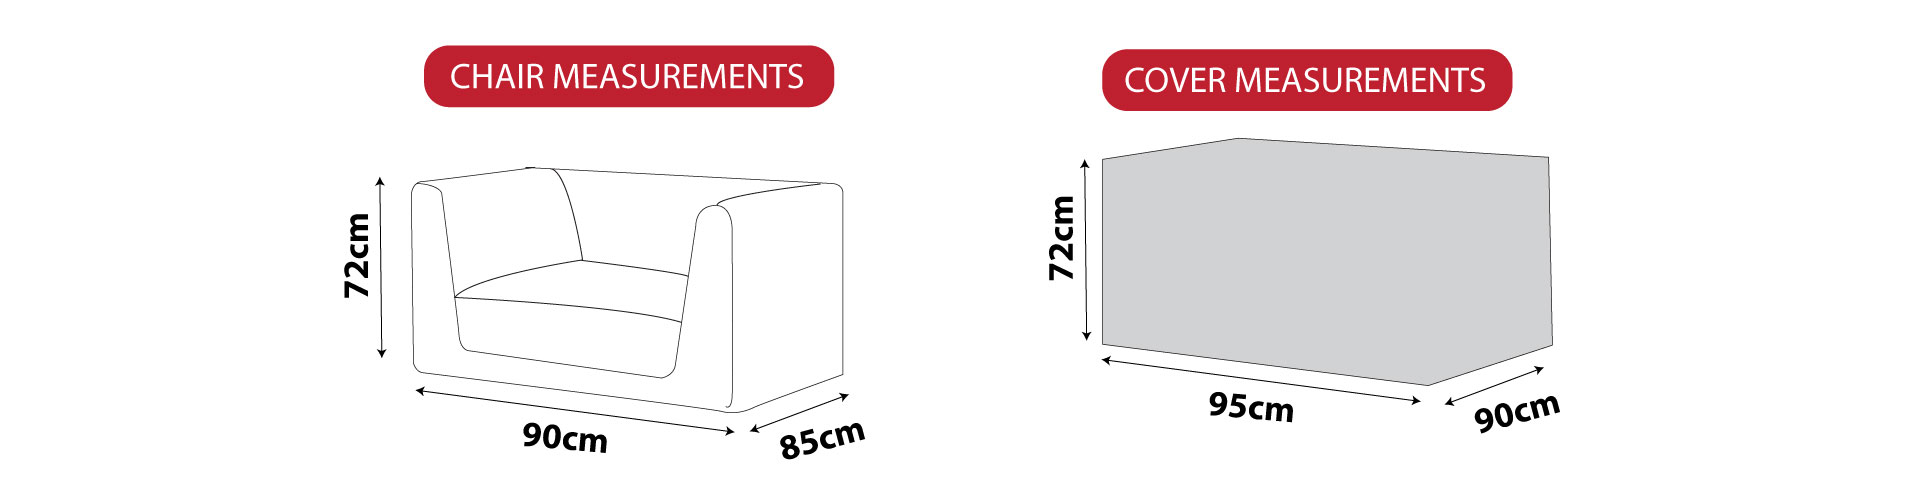 covers by coverworld largest covers range in australia